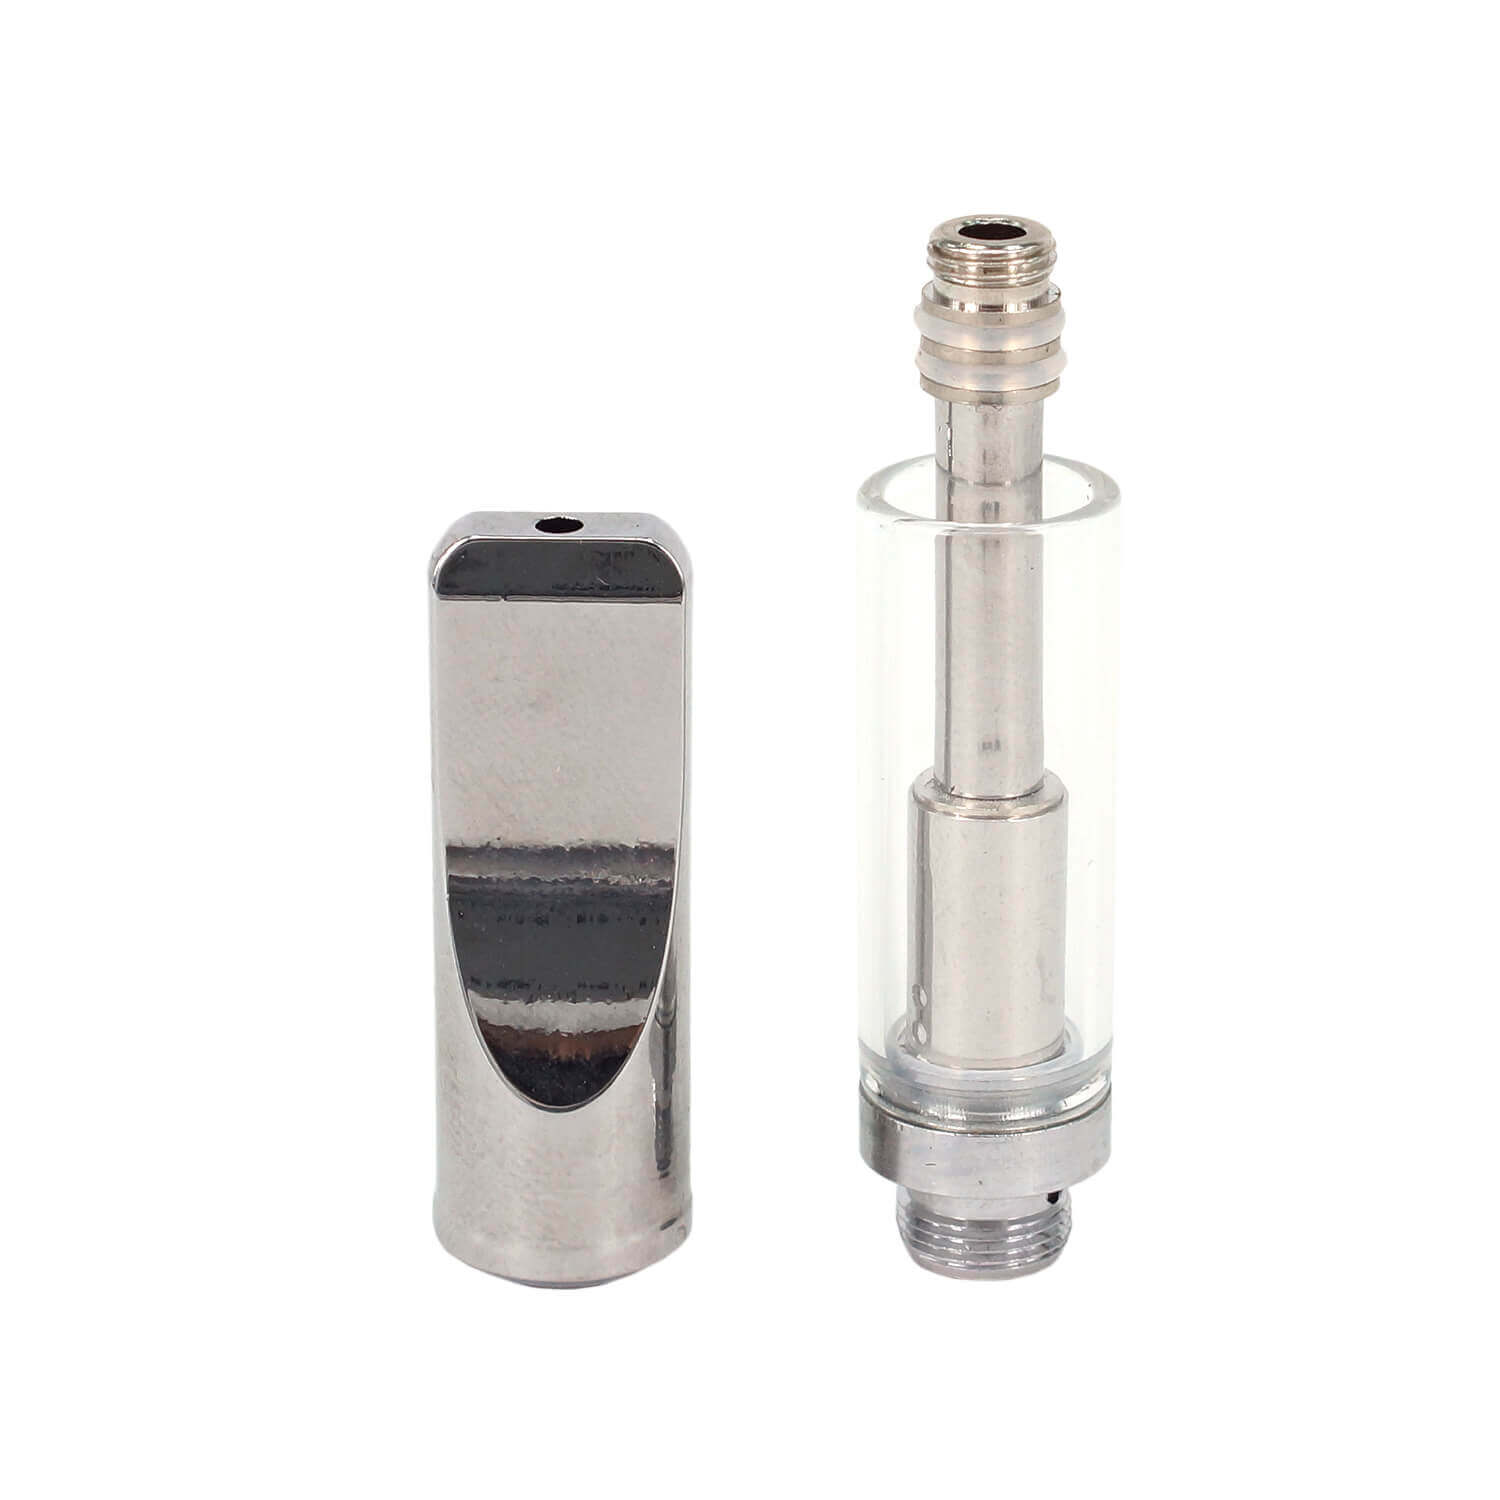 92A3 dual coil glass vaporizer cbd oil cartridge